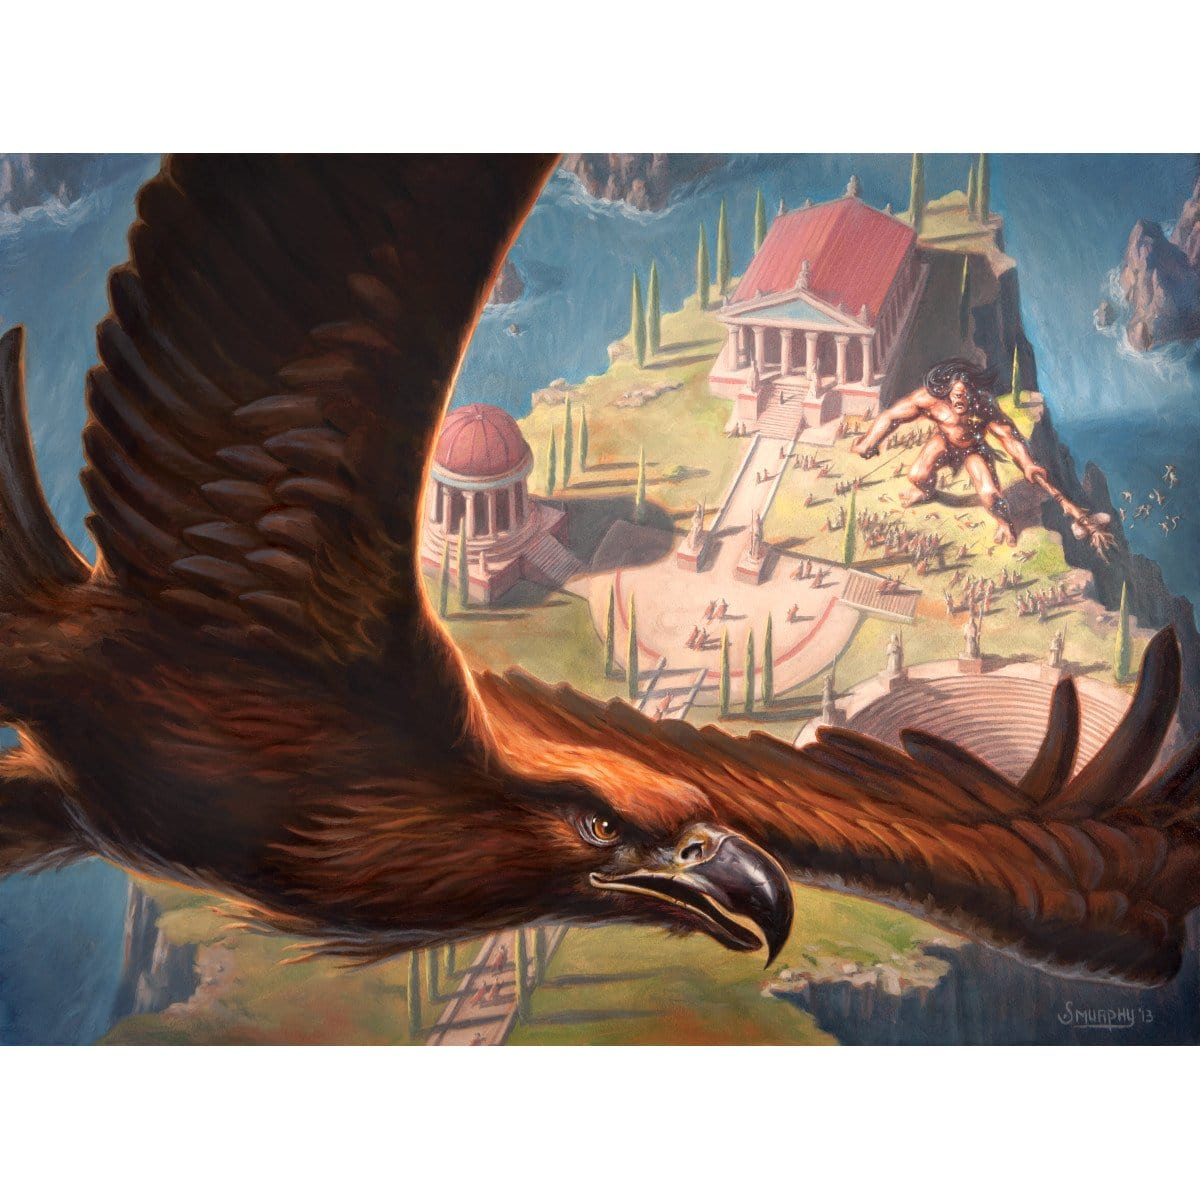 Eagle of the Watch Print - Print - Original Magic Art - Accessories for Magic the Gathering and other card games